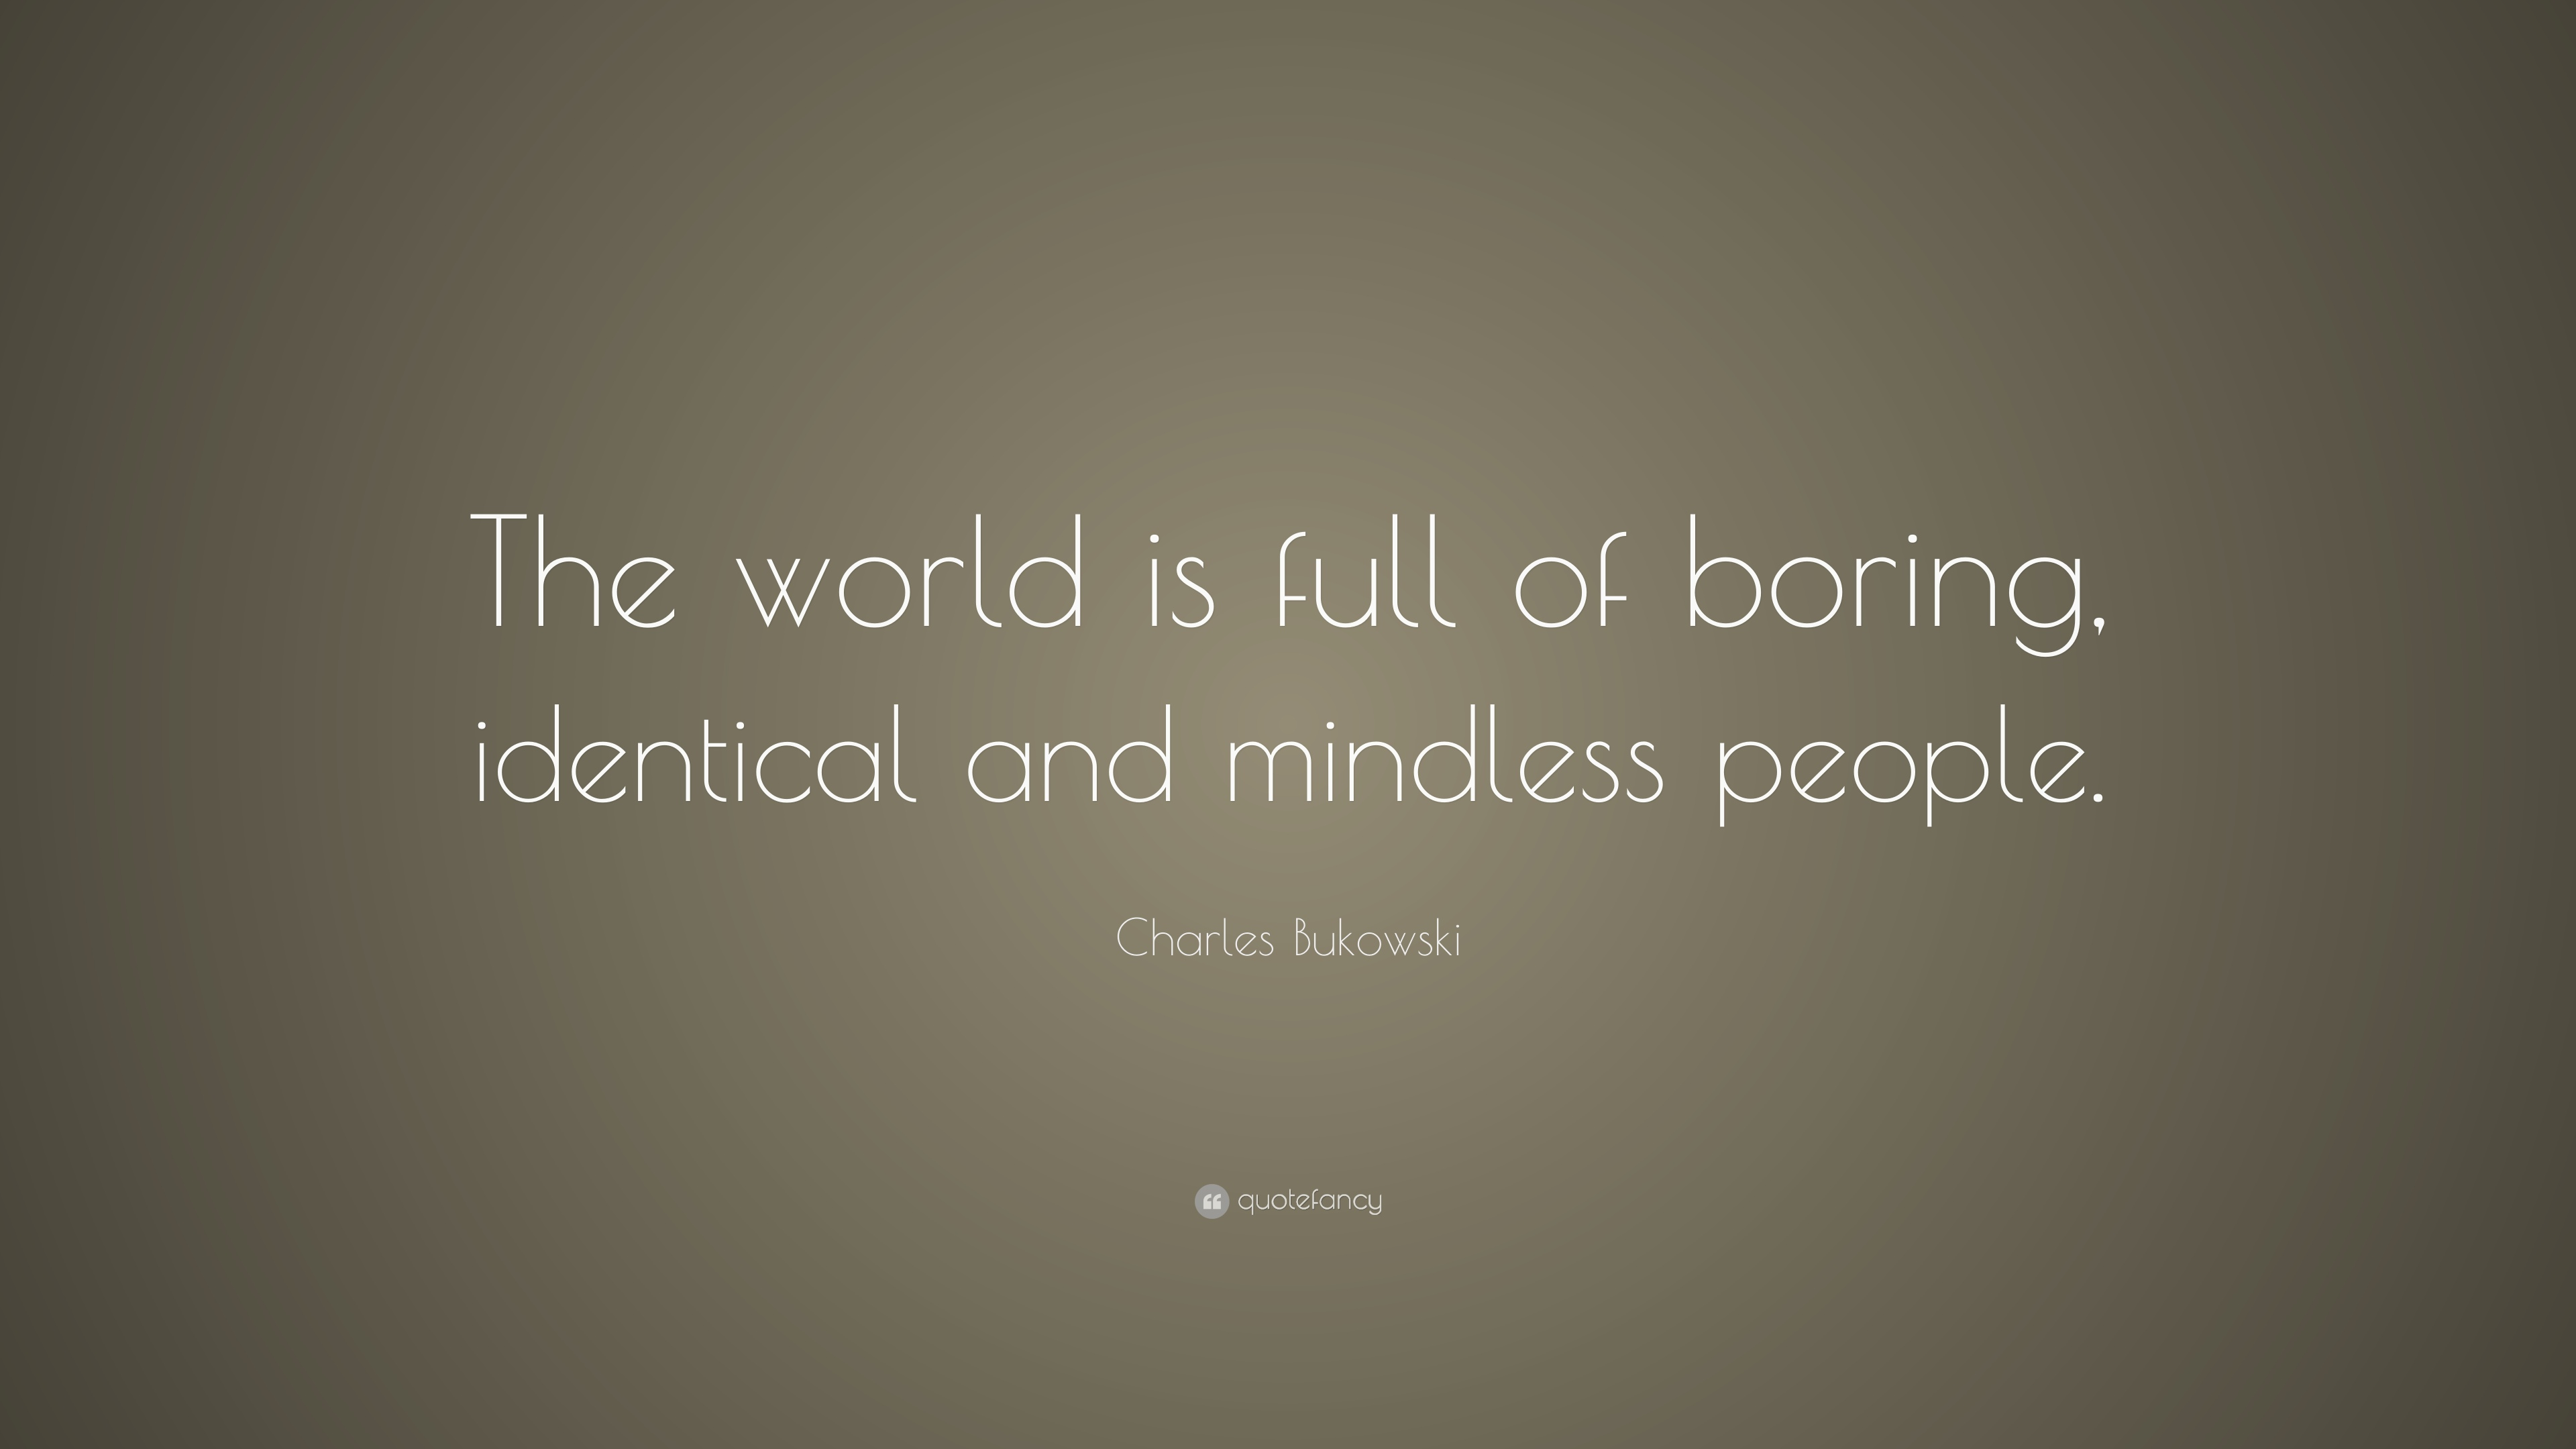 boring people quotes. charles bukowski quote: \u201cthe world is full of boring, identical and mindless people boring quotes